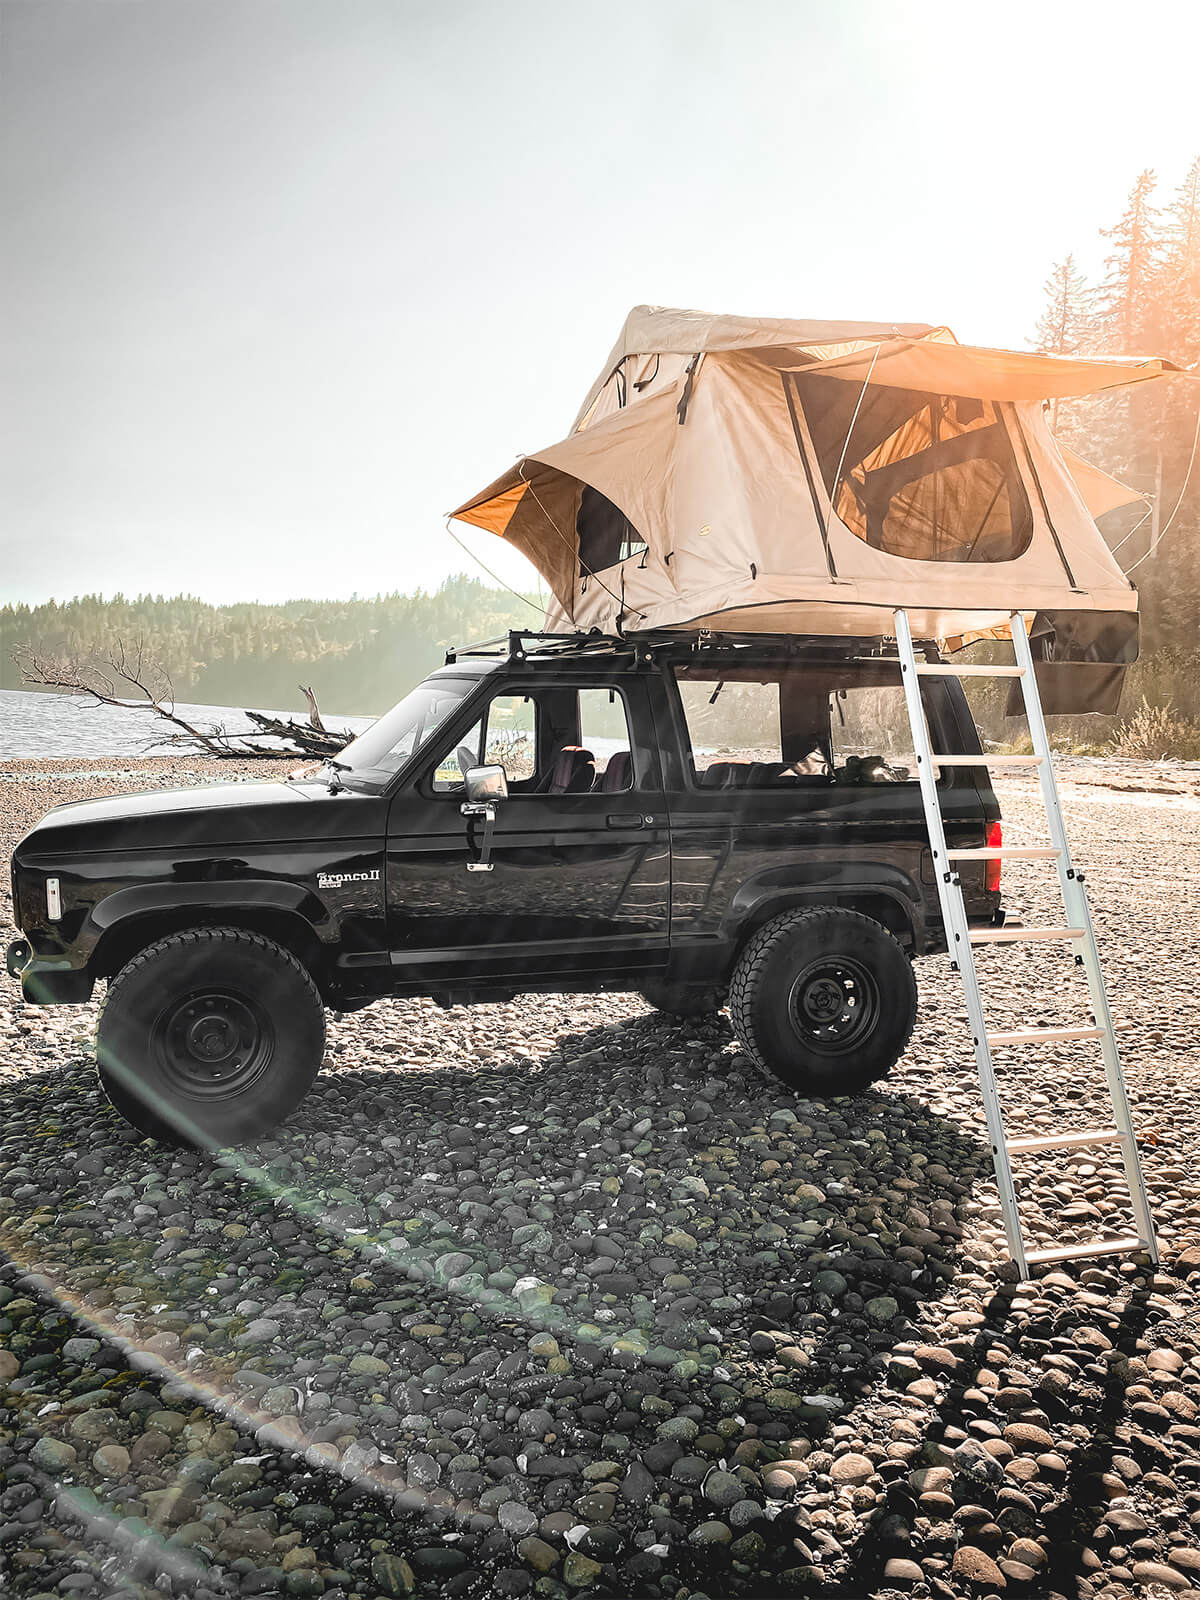 Ford Bronco II offroading and camping